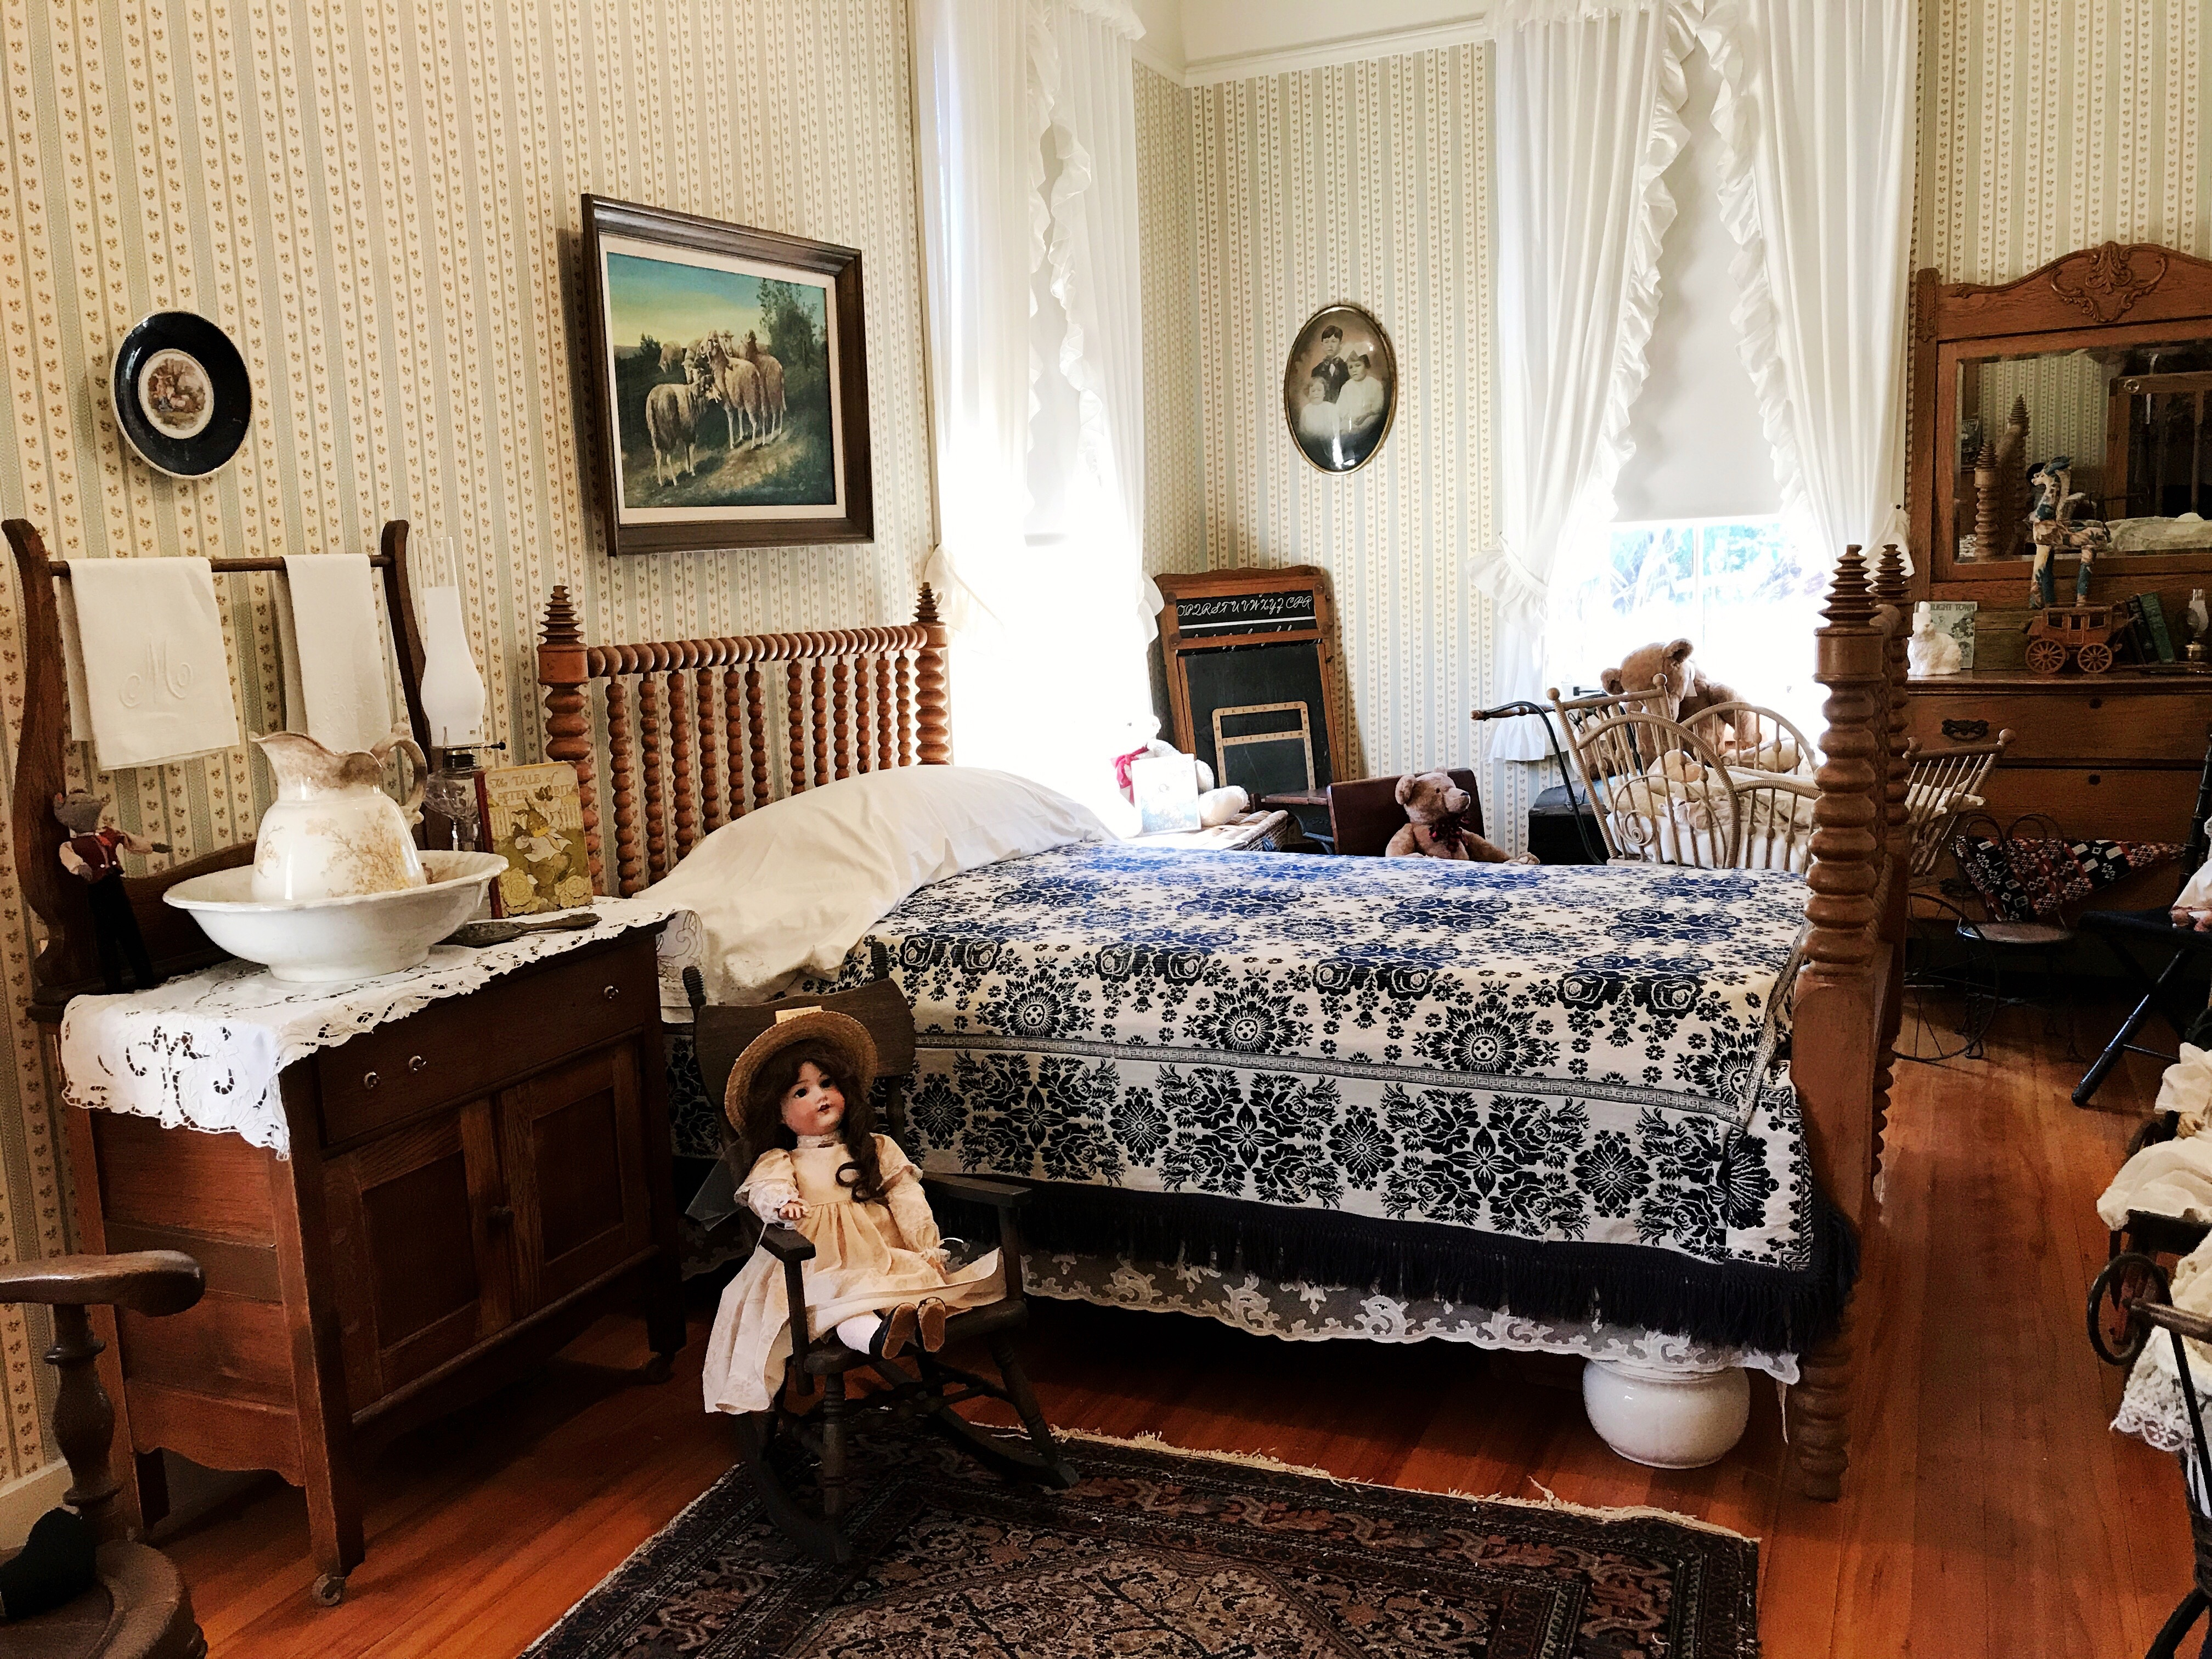 Stagecoach Inn Museum - Simple Sojourns